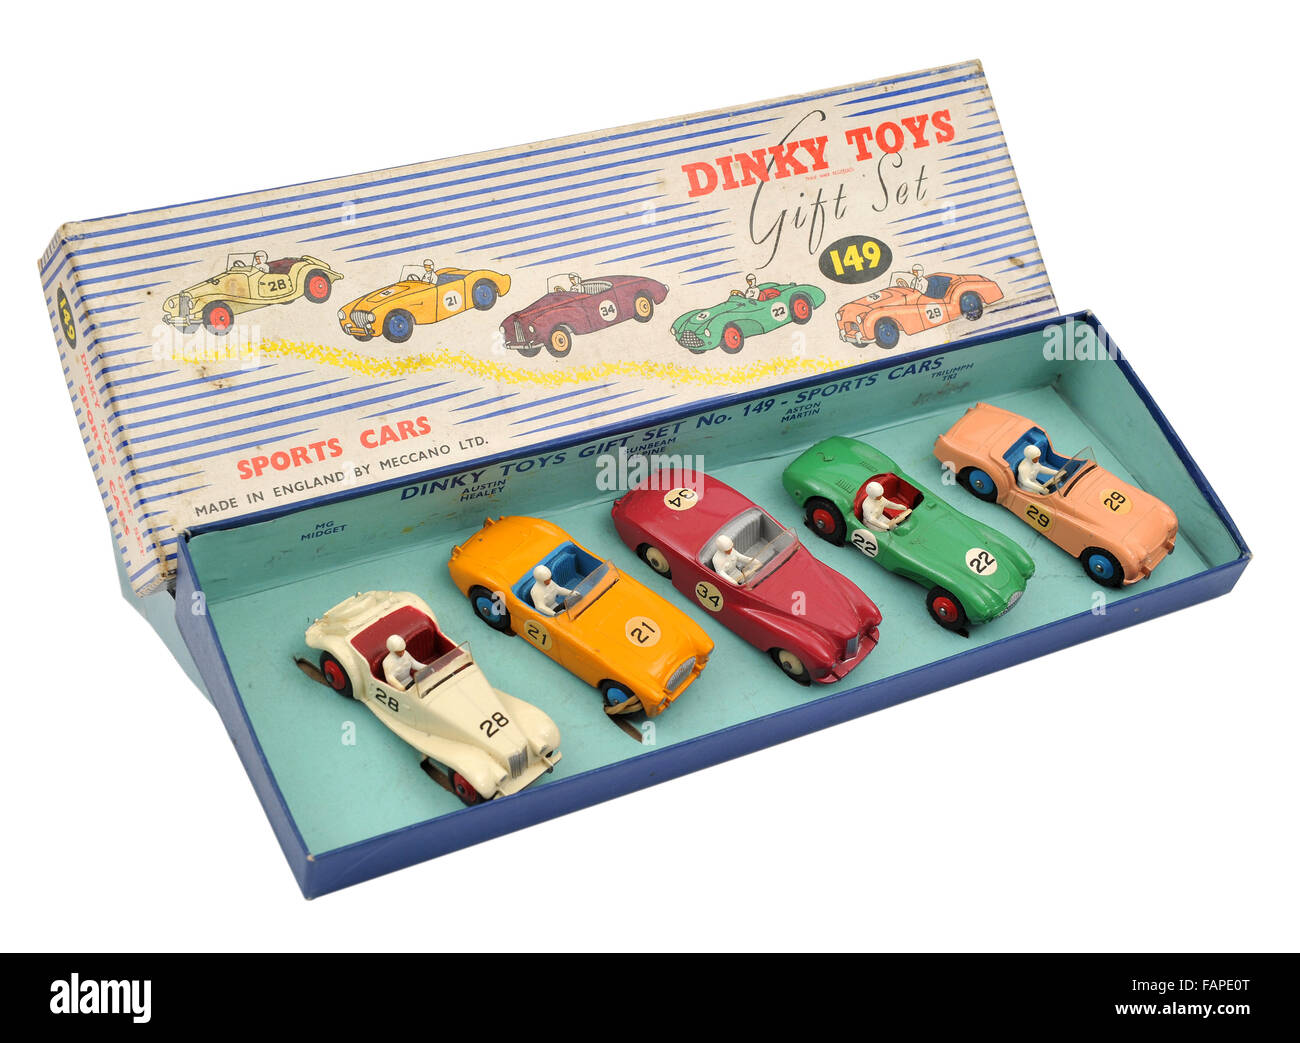 Children's Dinky Toys 149 Sports Cars Gift Set - Stock Image